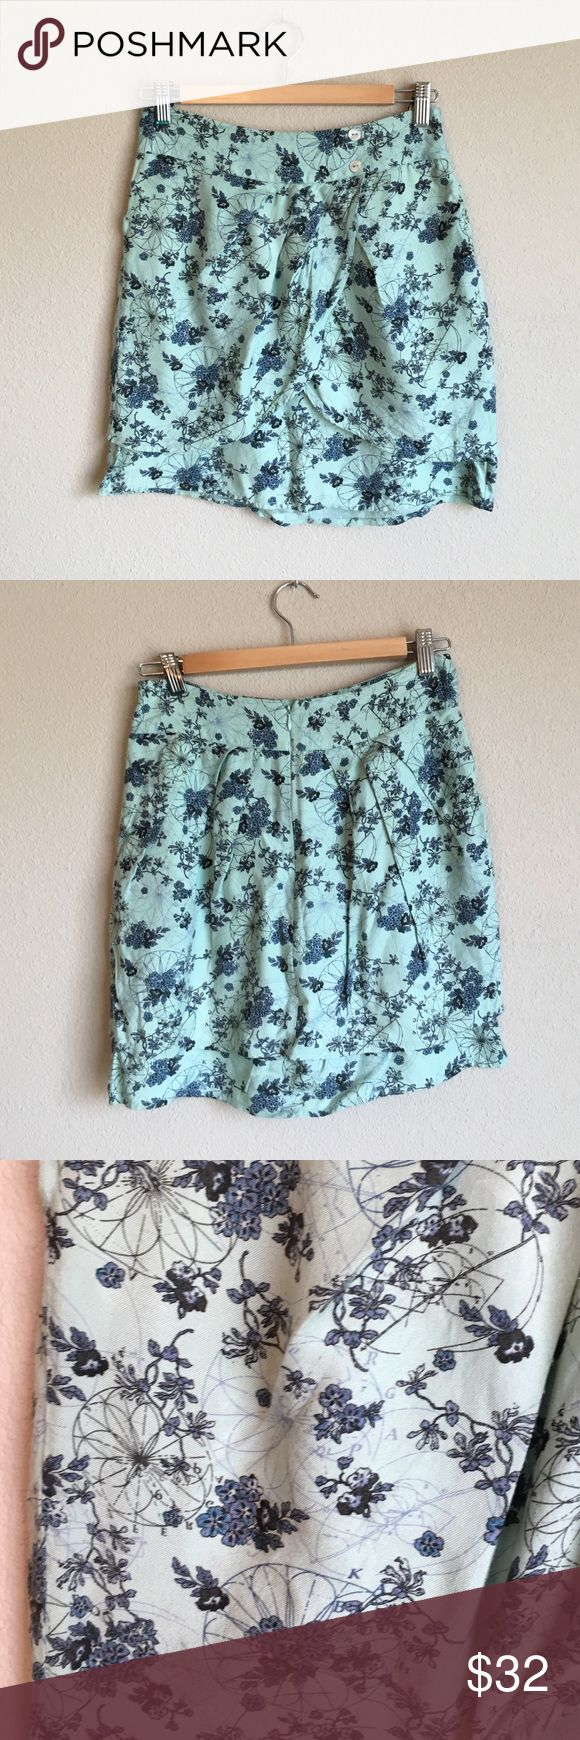 Selling this Kimchi Blue Floral Tulip Skirt - 4 on Poshmark! My username is: gealg. #shopmycloset #poshmark #fashion #shopping #style #forsale #Urban Outfitters #Dresses & Skirts